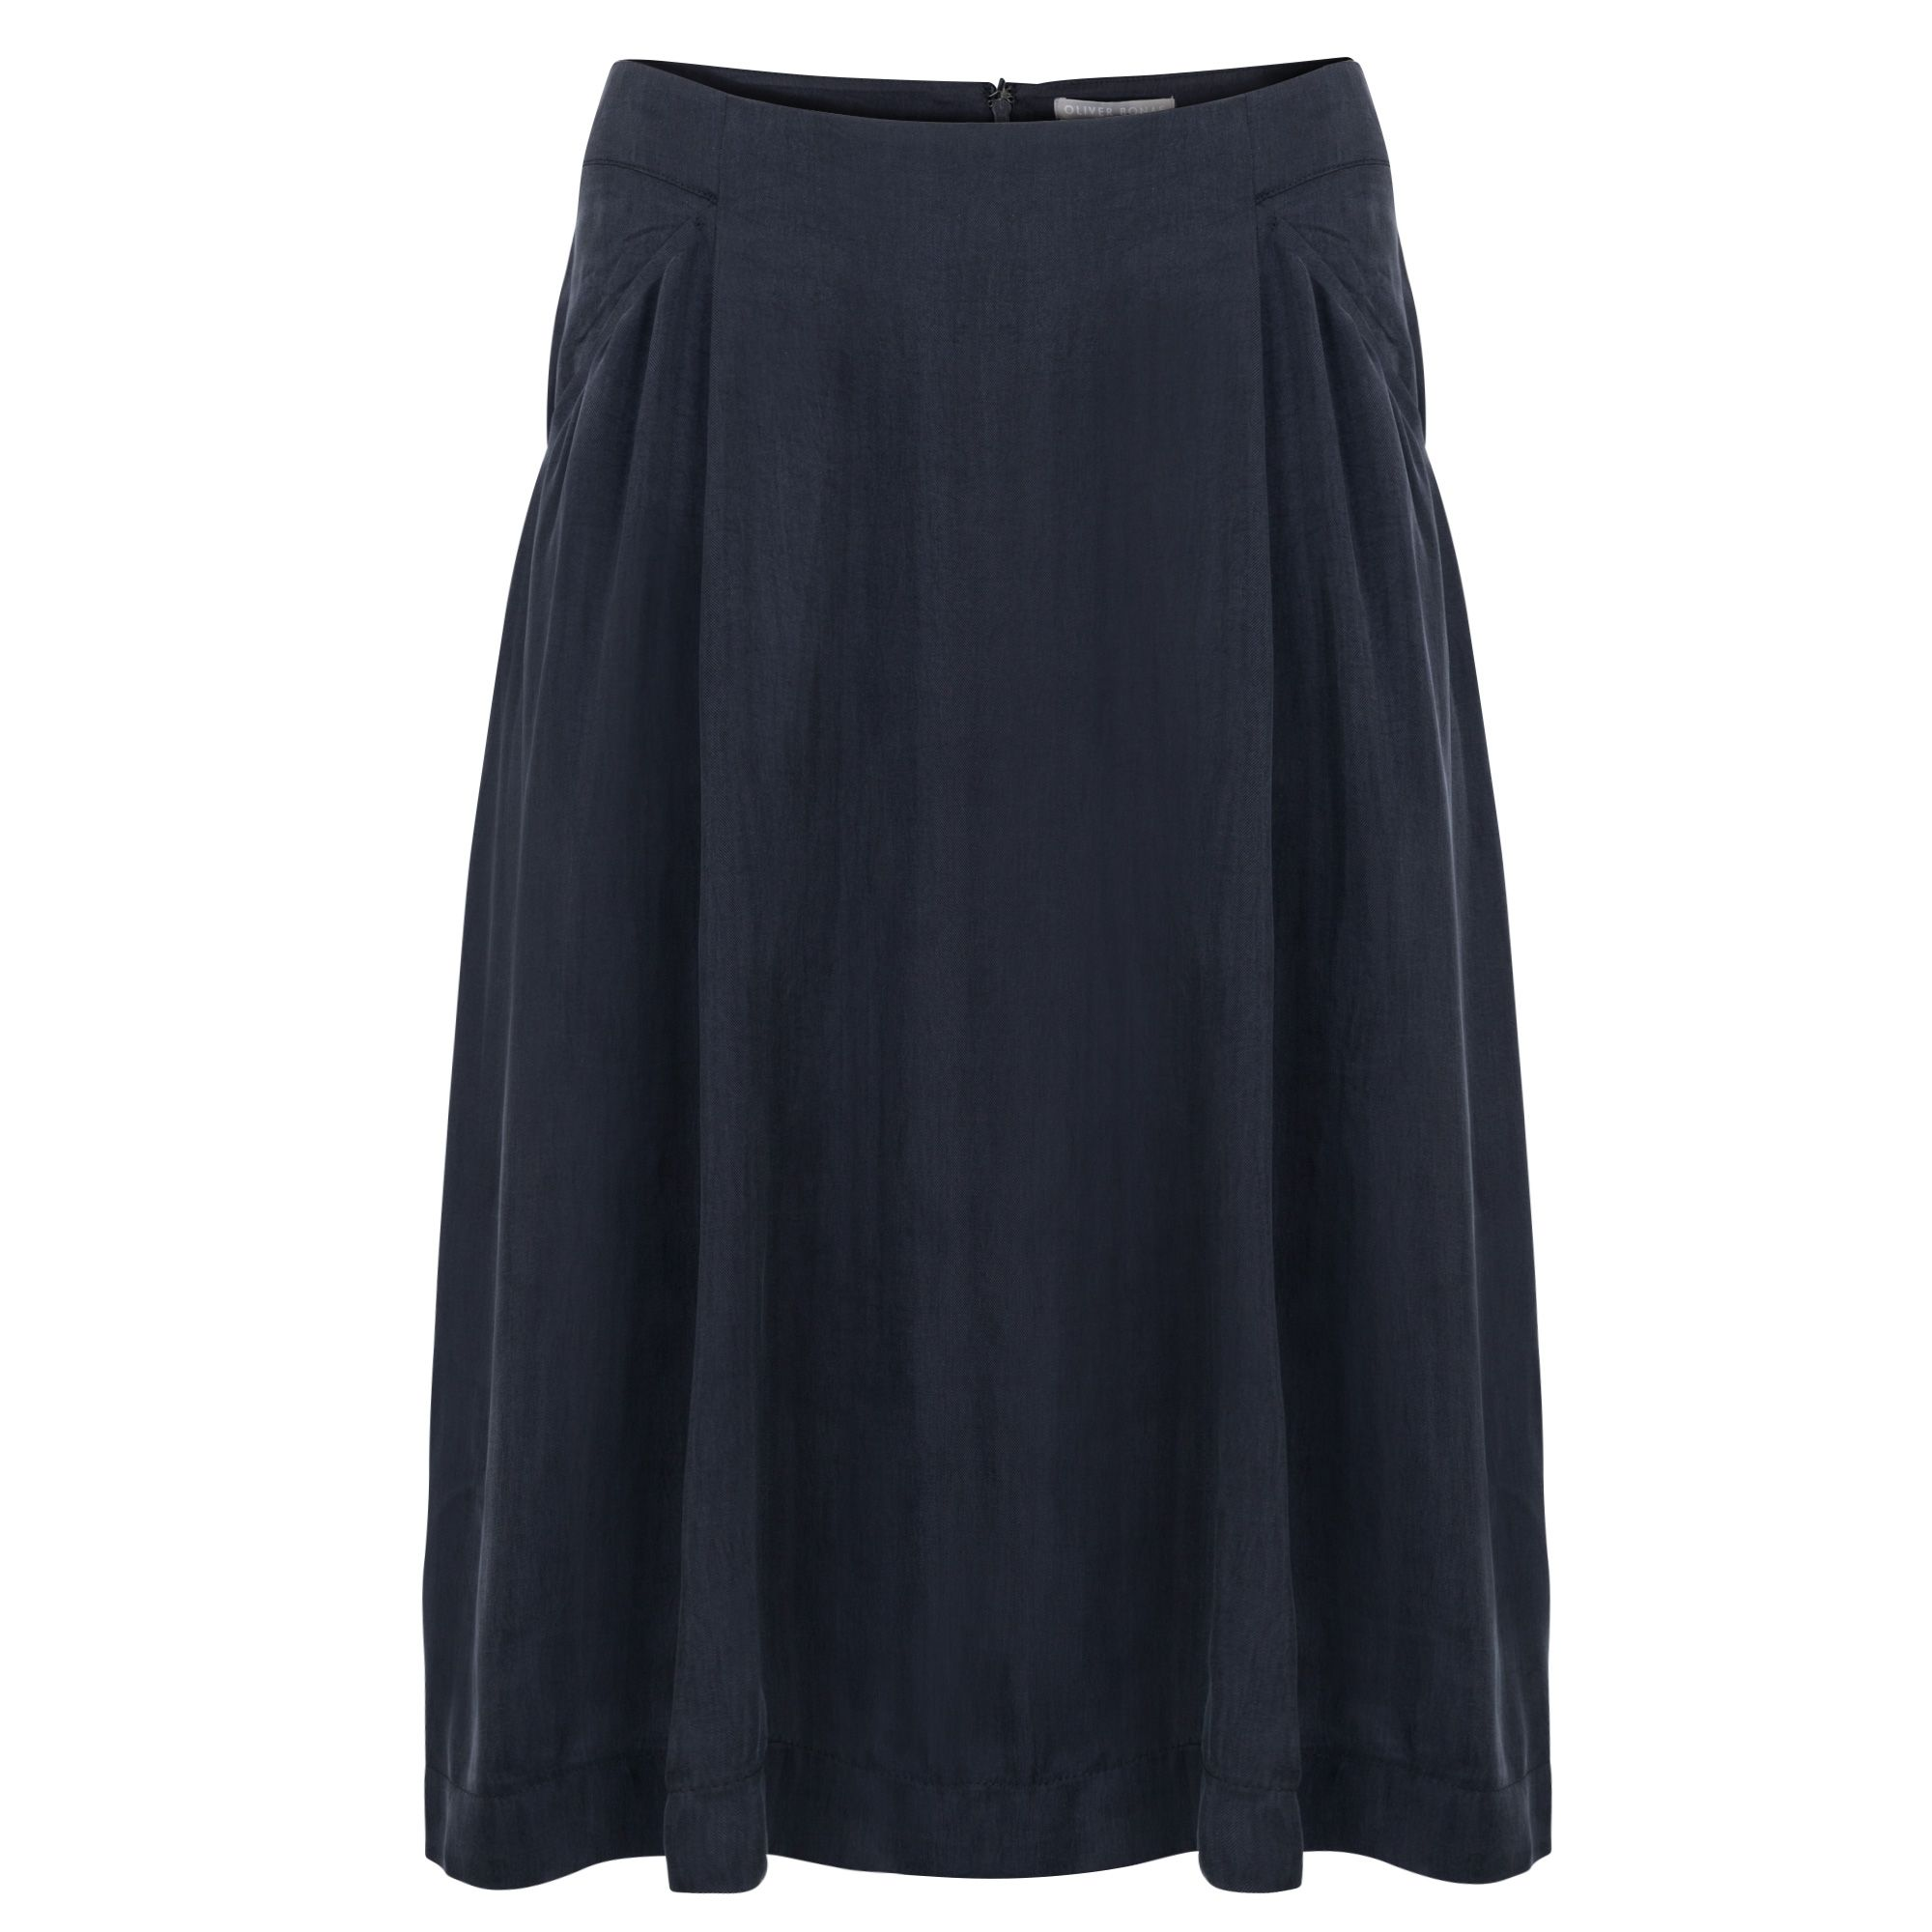 e11597c93728a0 Buy the Eclipse Midi Skirt at Oliver Bonas. Enjoy free worldwide standard  delivery for orders